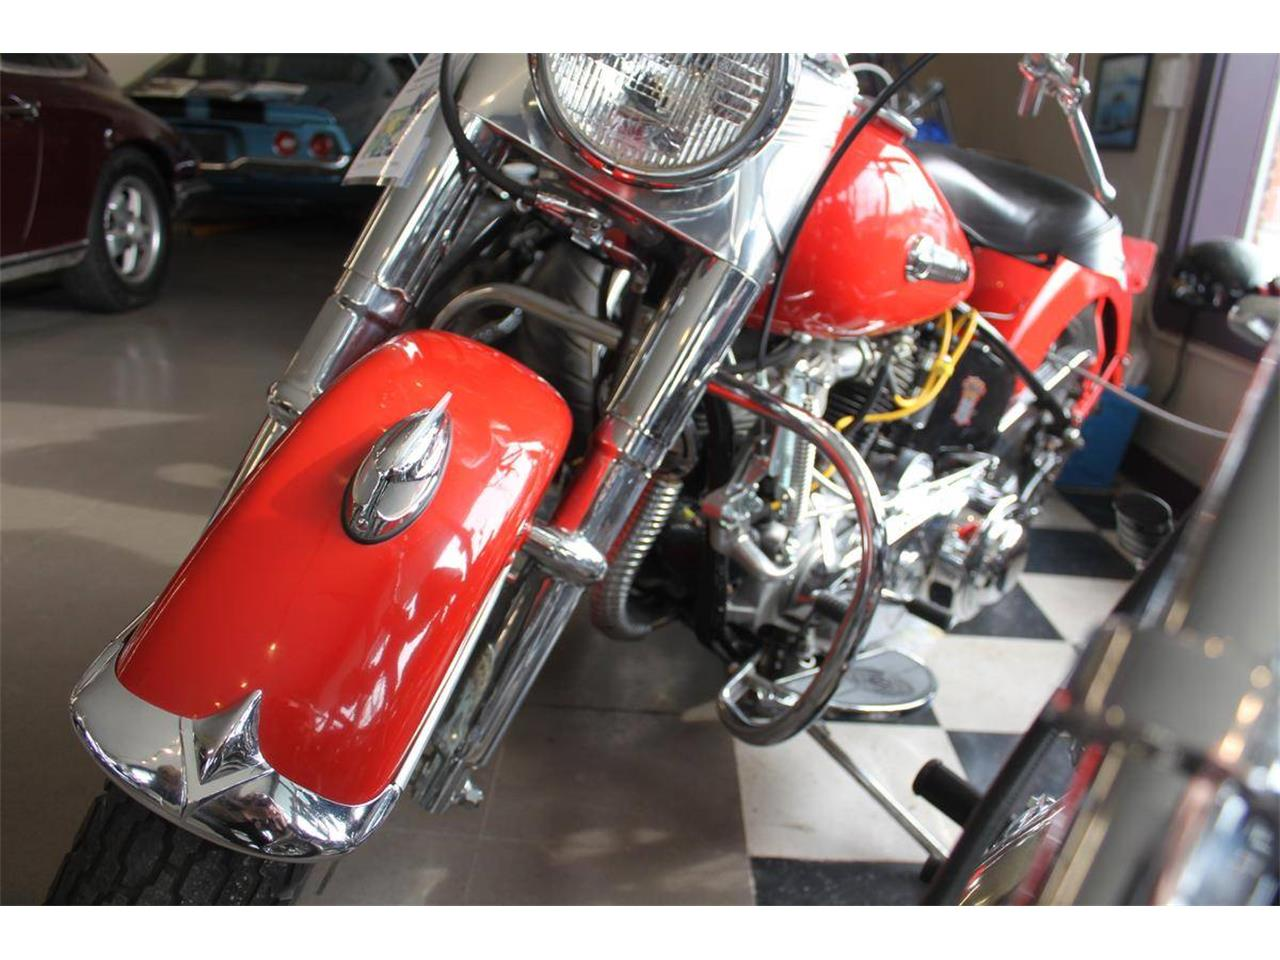 1950 Harley-Davidson Motorcycle for sale in Carnation, WA – photo 5